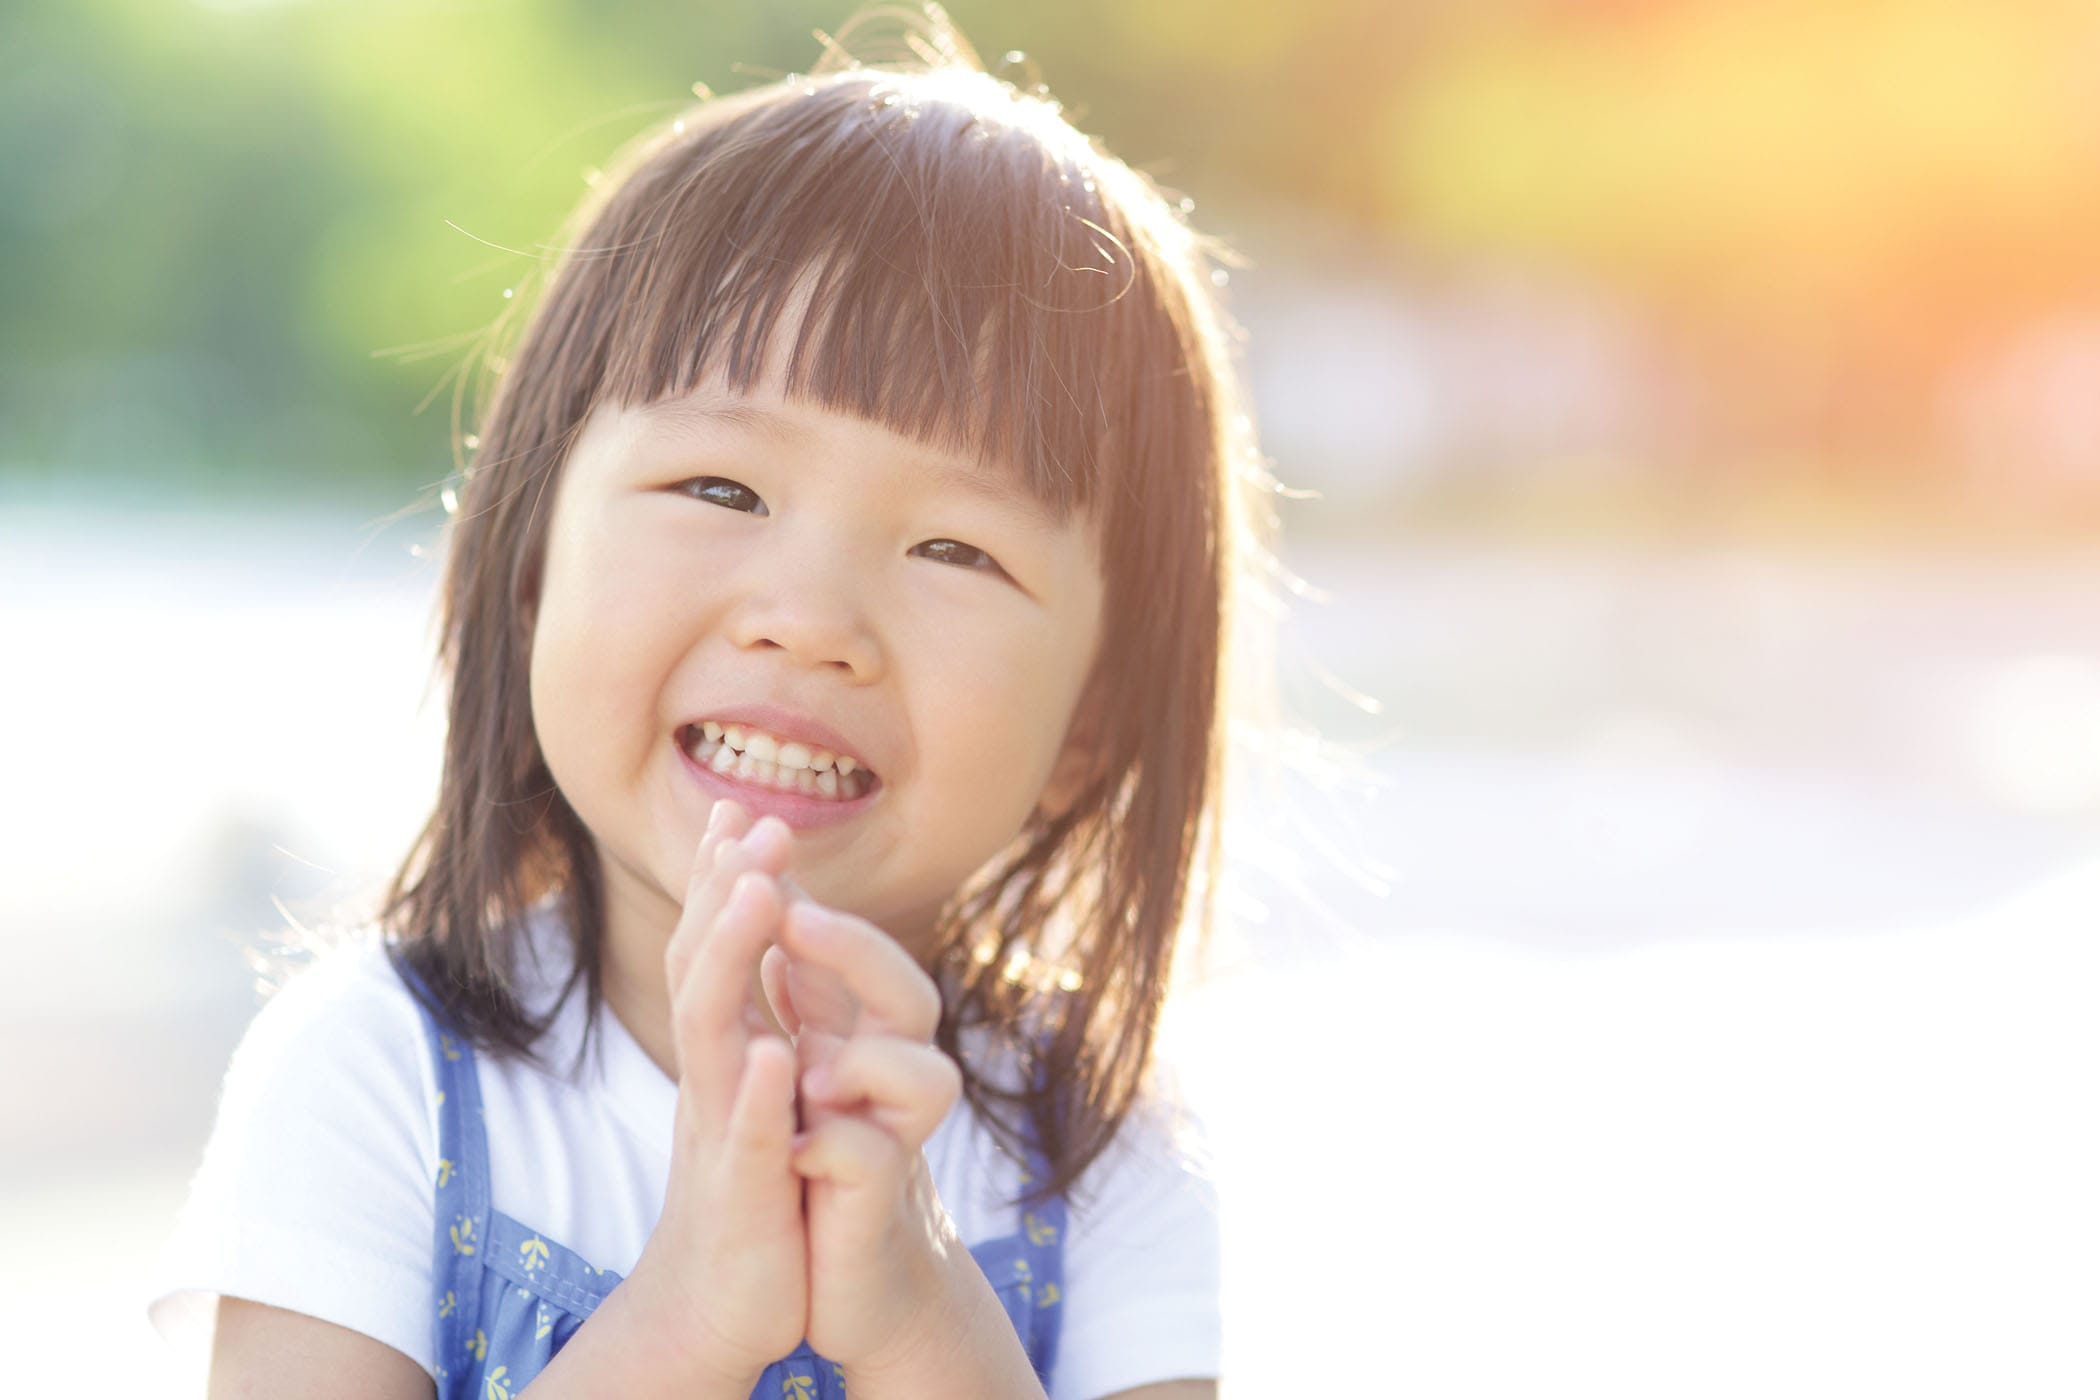 international adoption texas international adoption servicesif you would like to adopt a child from another country, you\u0027ll find that opportunity at providence place, too